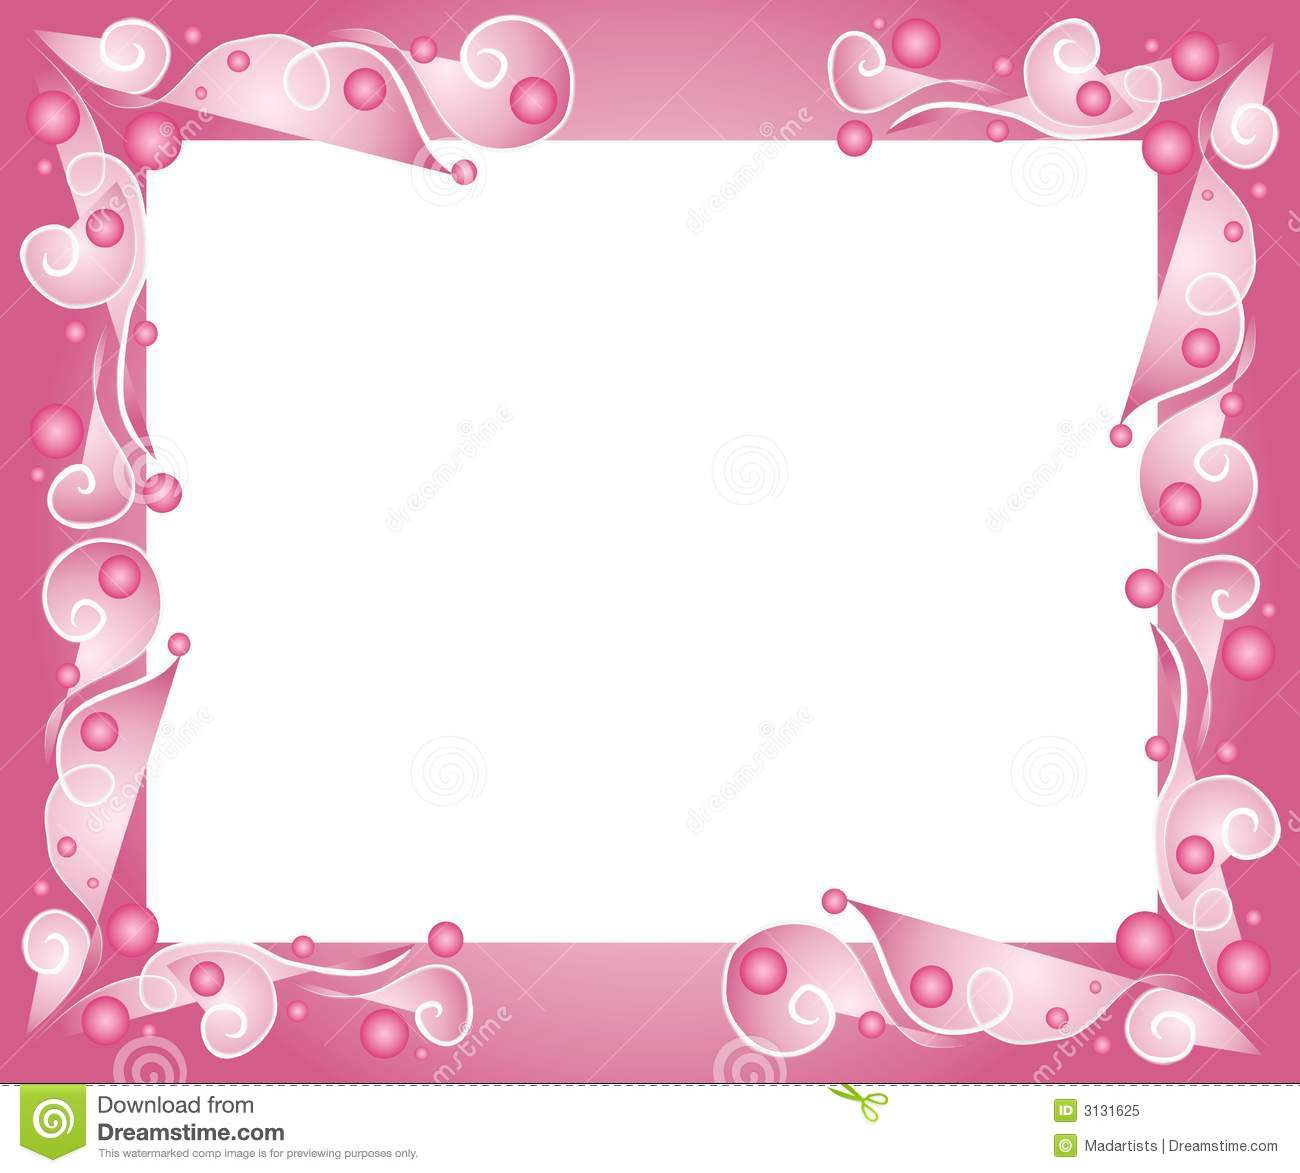 Breast Cancer 3d Wallpaper For Pc Decorative Pink Frame Border Royalty Free Stock Photo